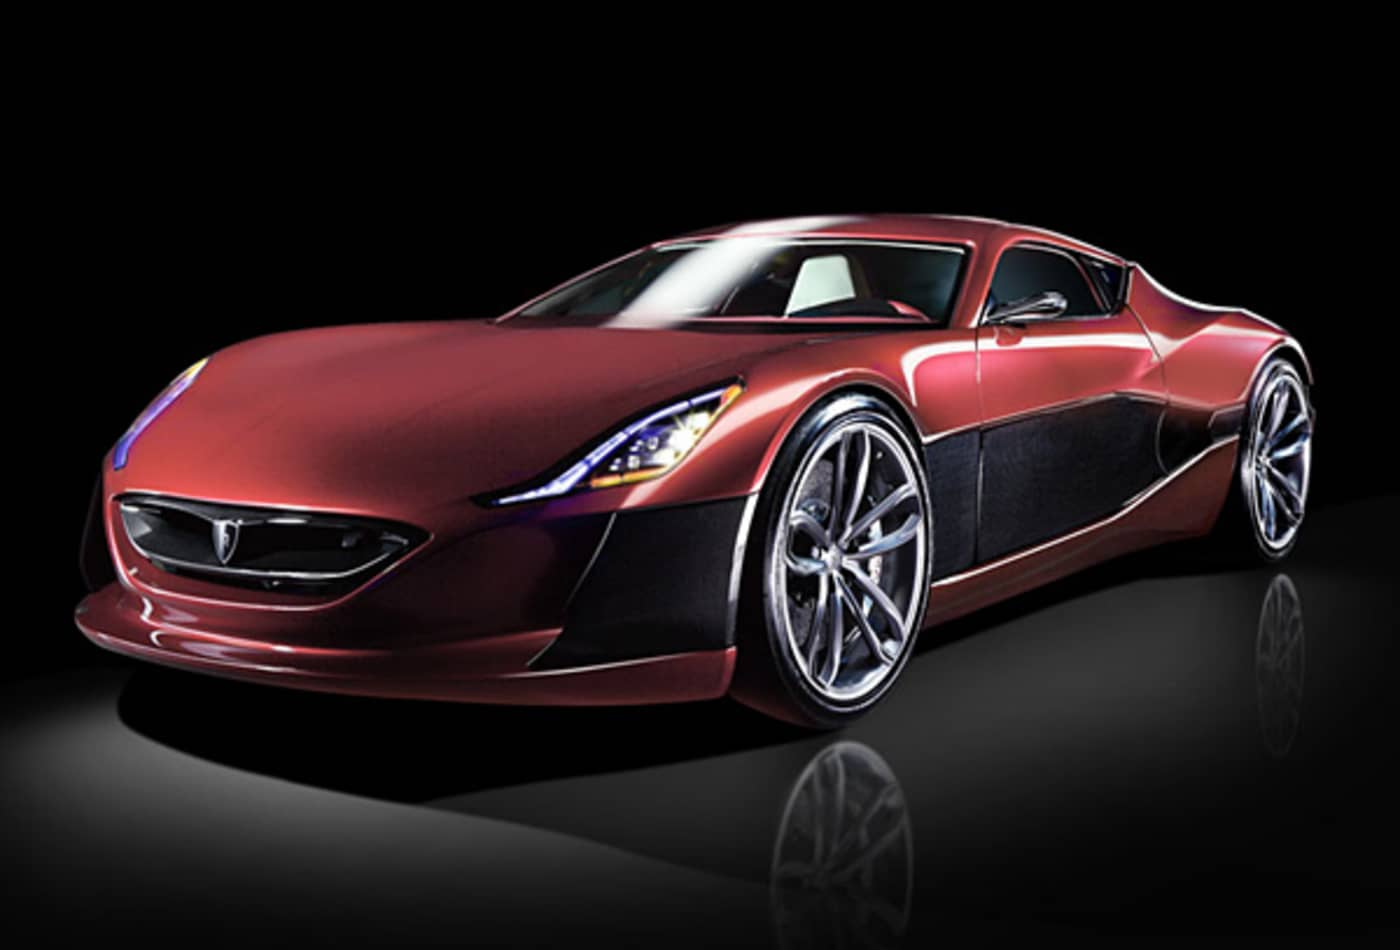 Rimac-Concept-One-Luxurious-Electric-Cars.jpg